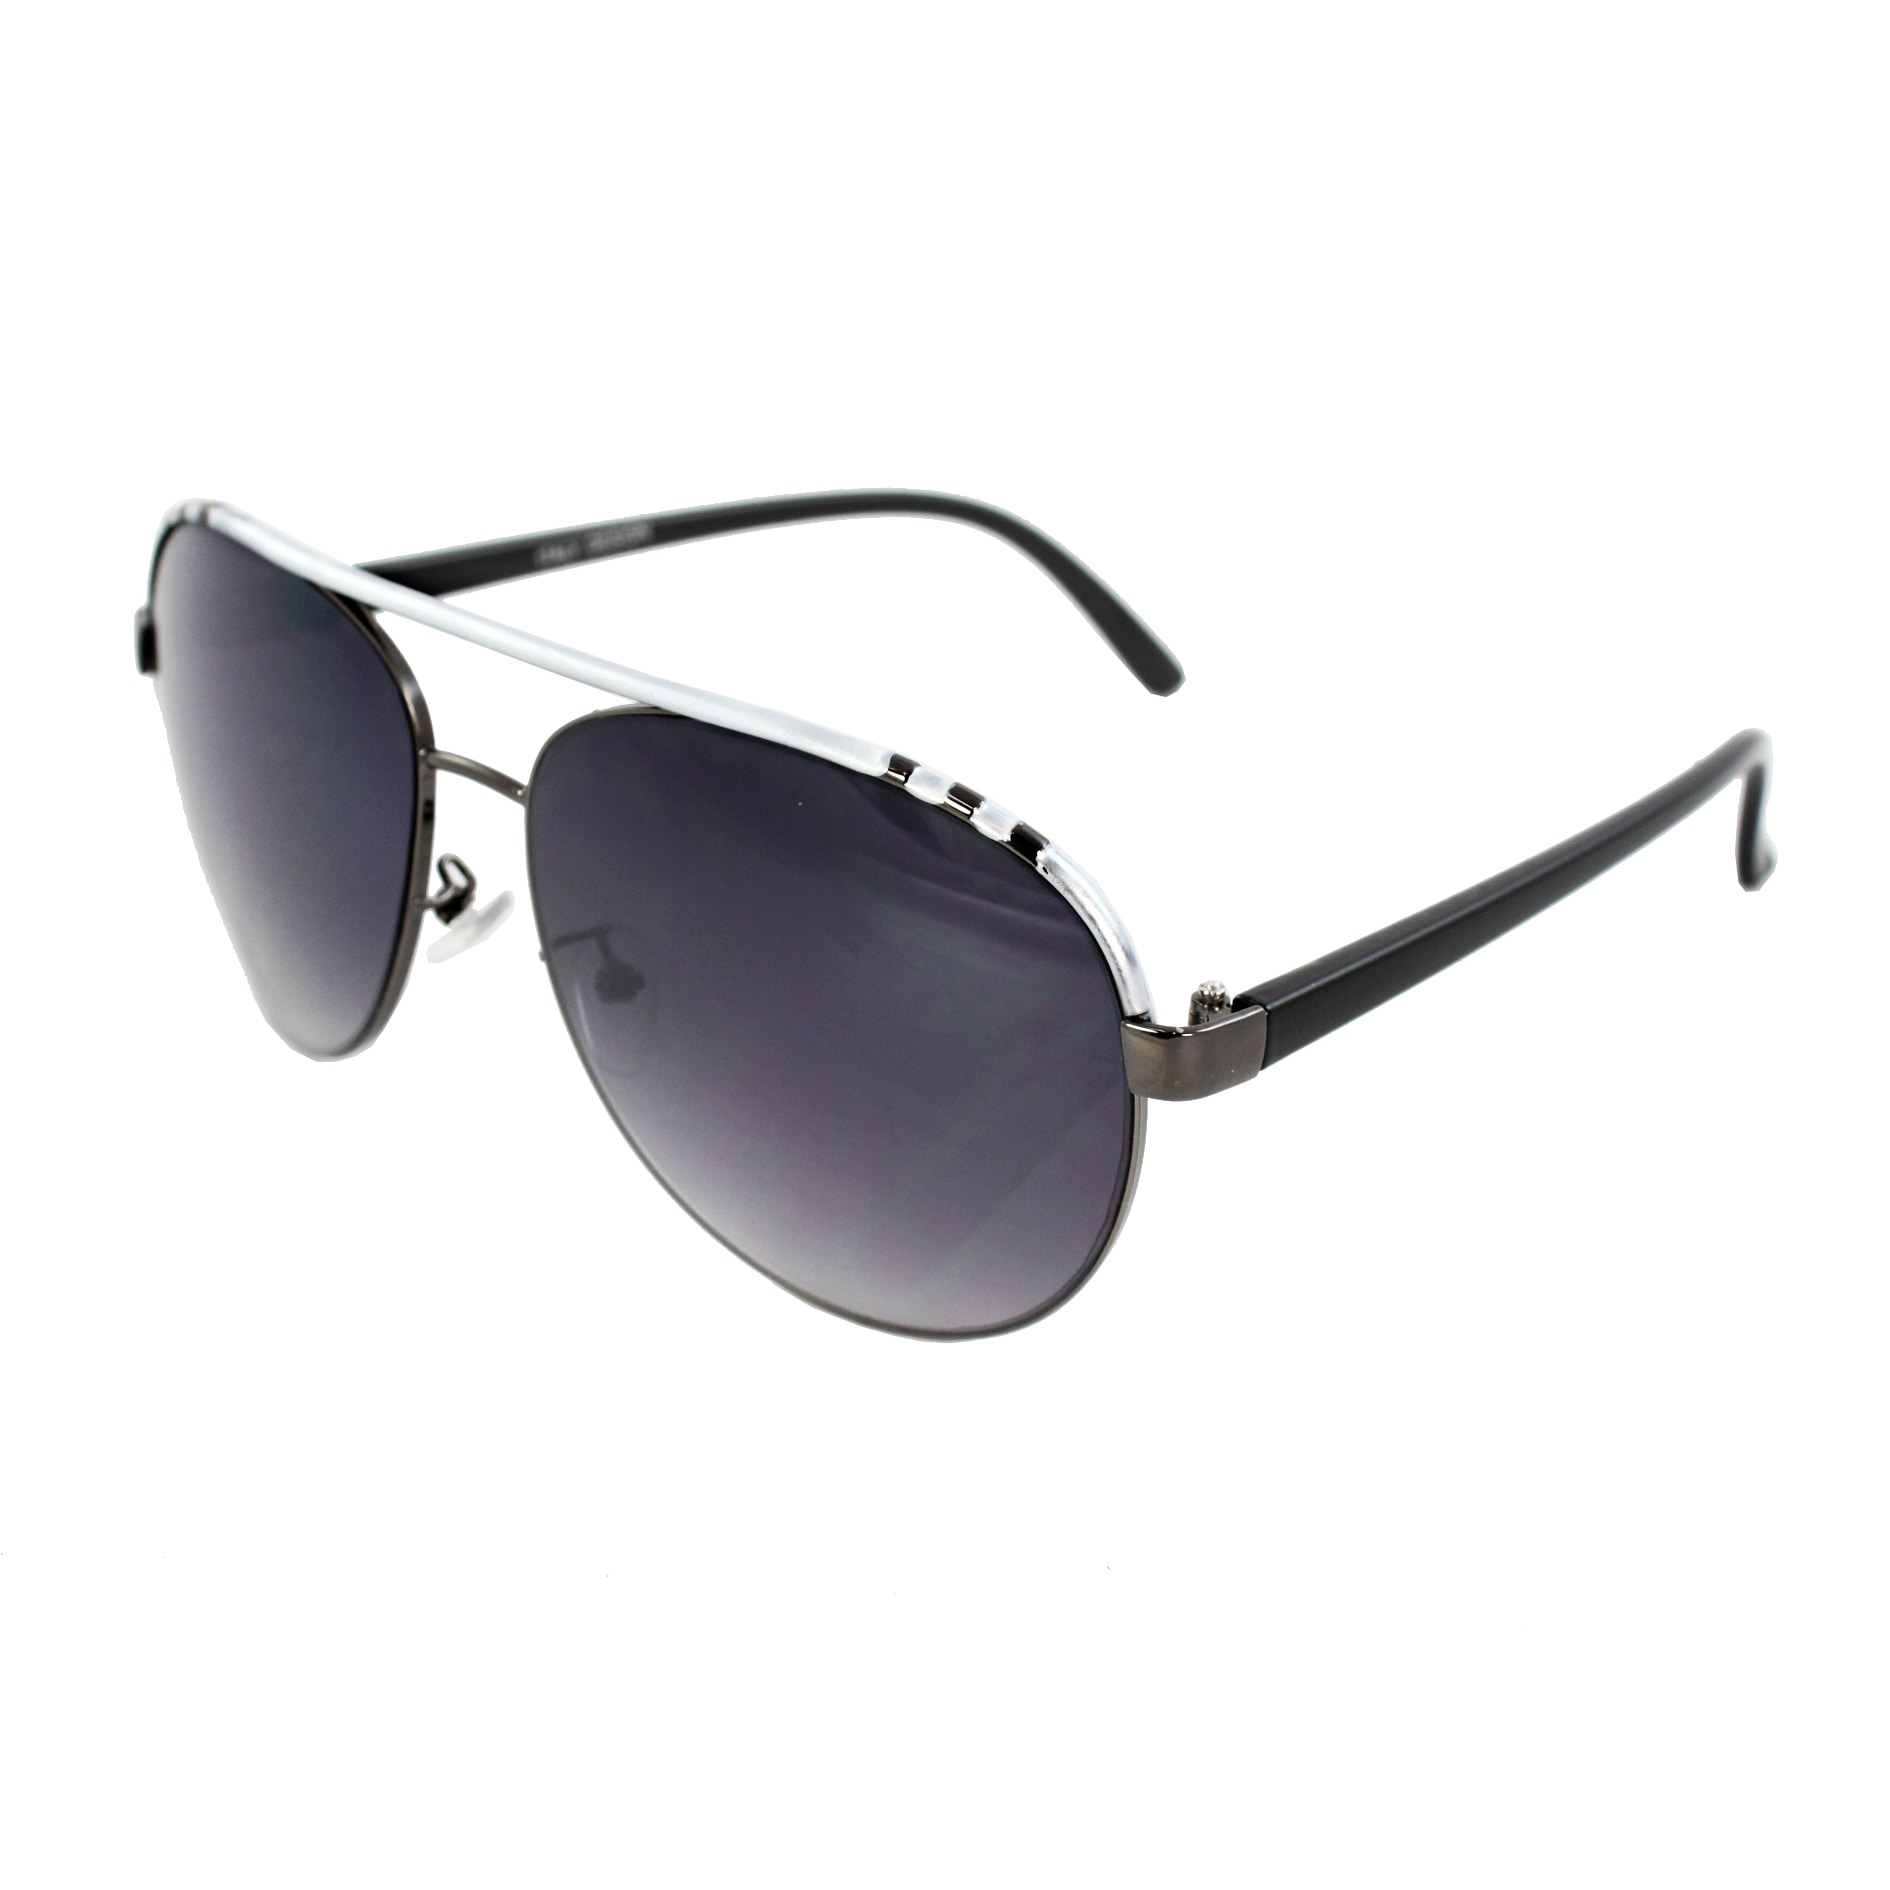 Pilot Aviator Fashion Sunglasses Silver and Black Frame Purple Black Lenses for Women and Men